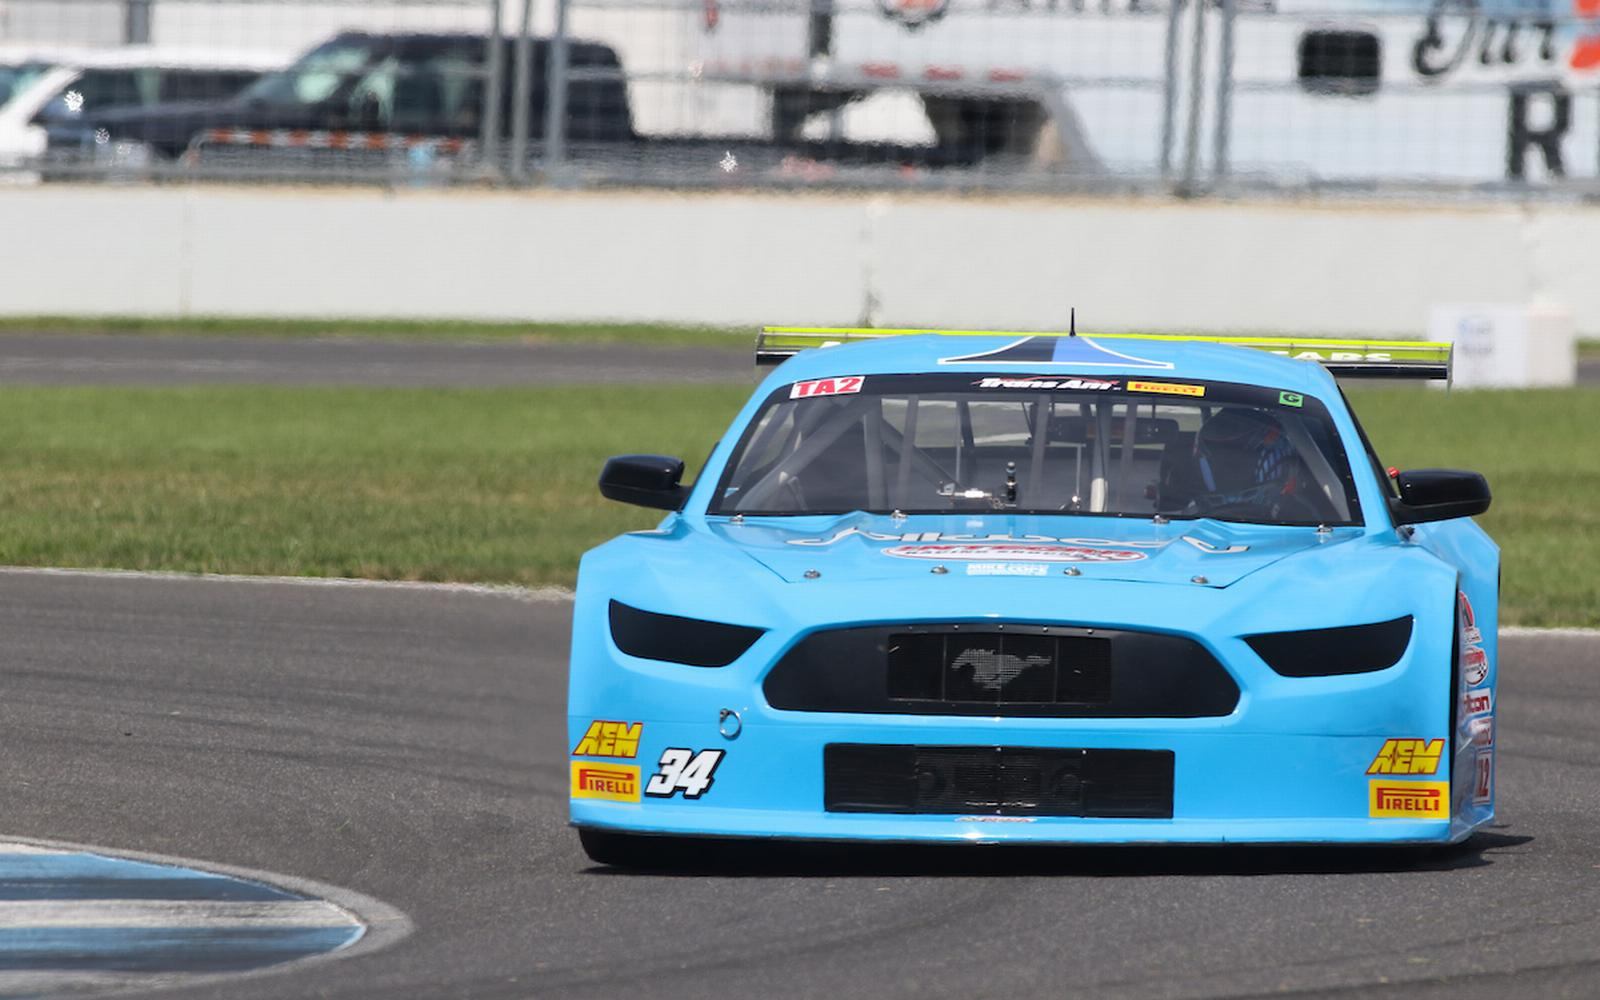 Mike Cope Racing Ready for Demanding 2nd Half of TA2 Season